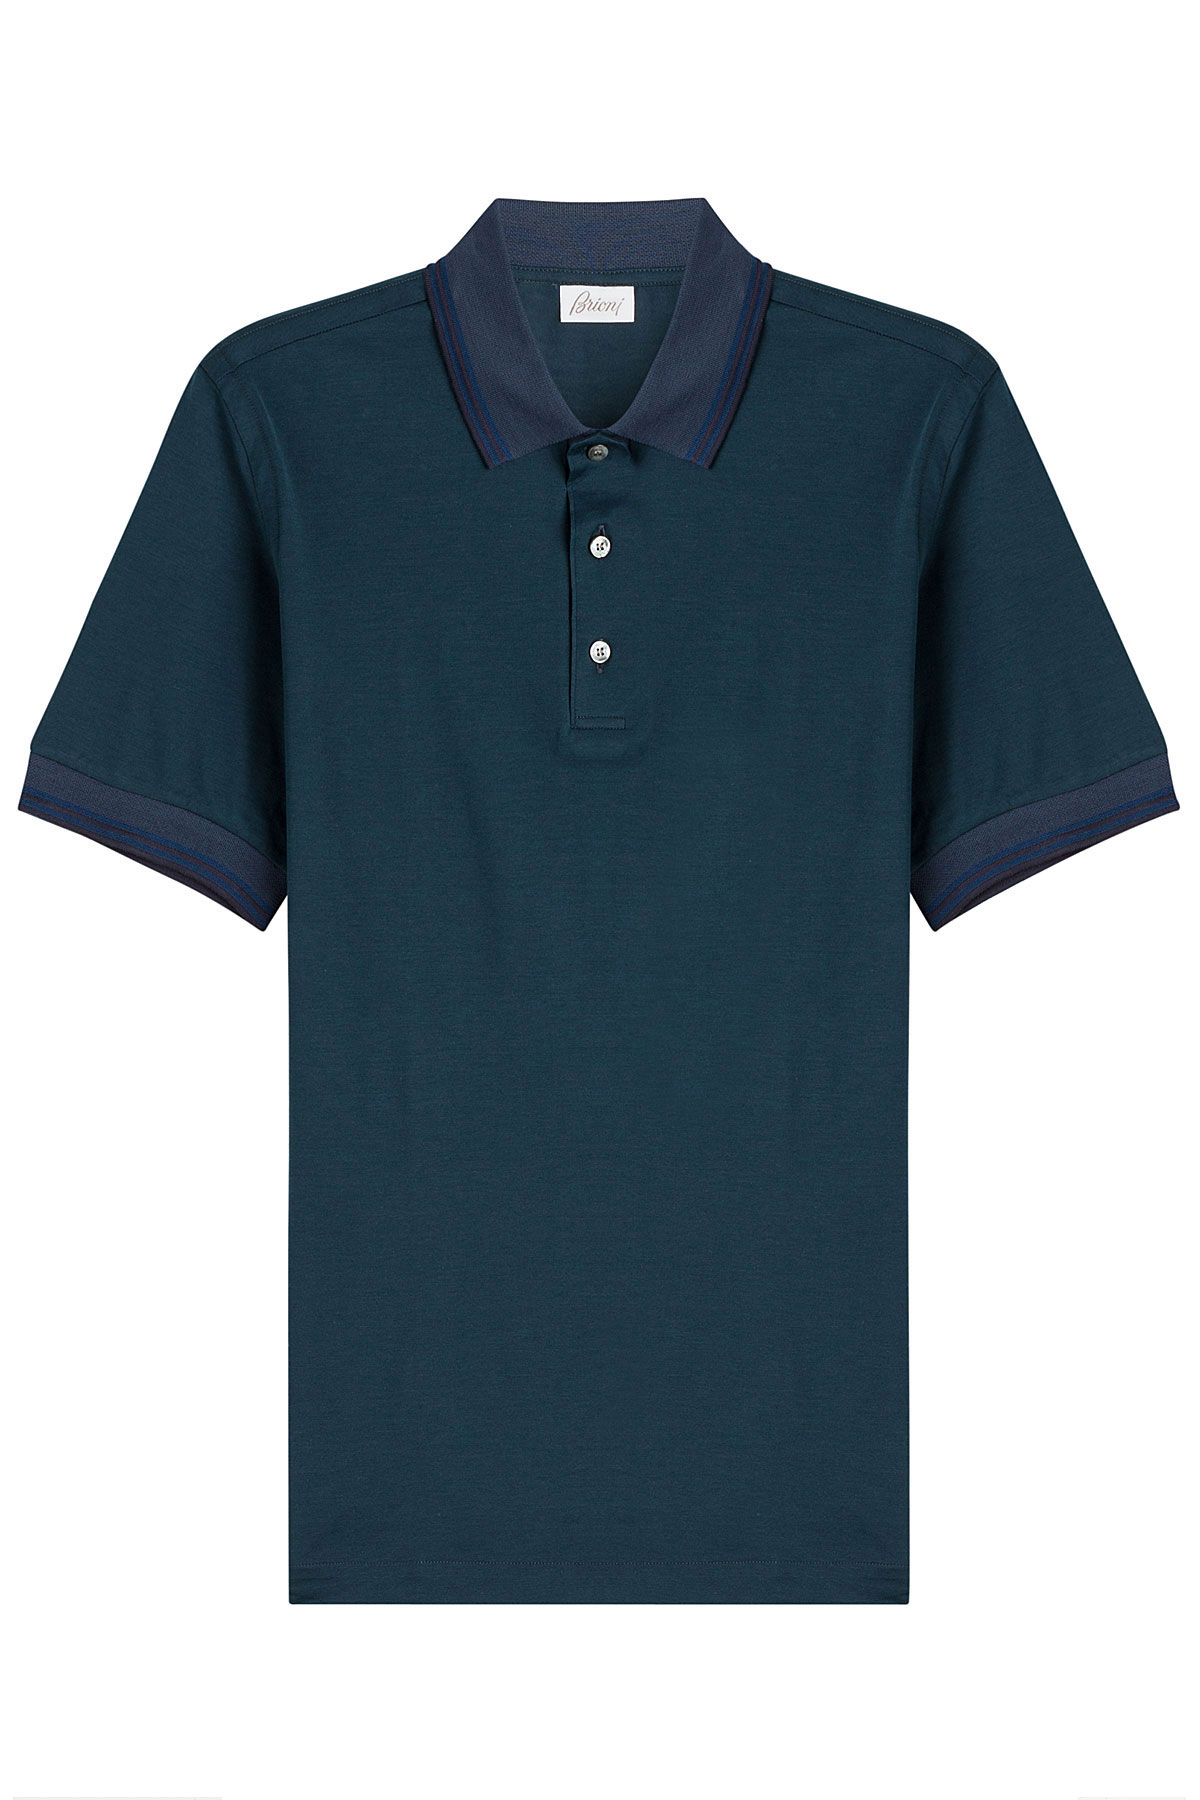 Lyst Brioni Cotton Polo Shirt Green In Blue For Men